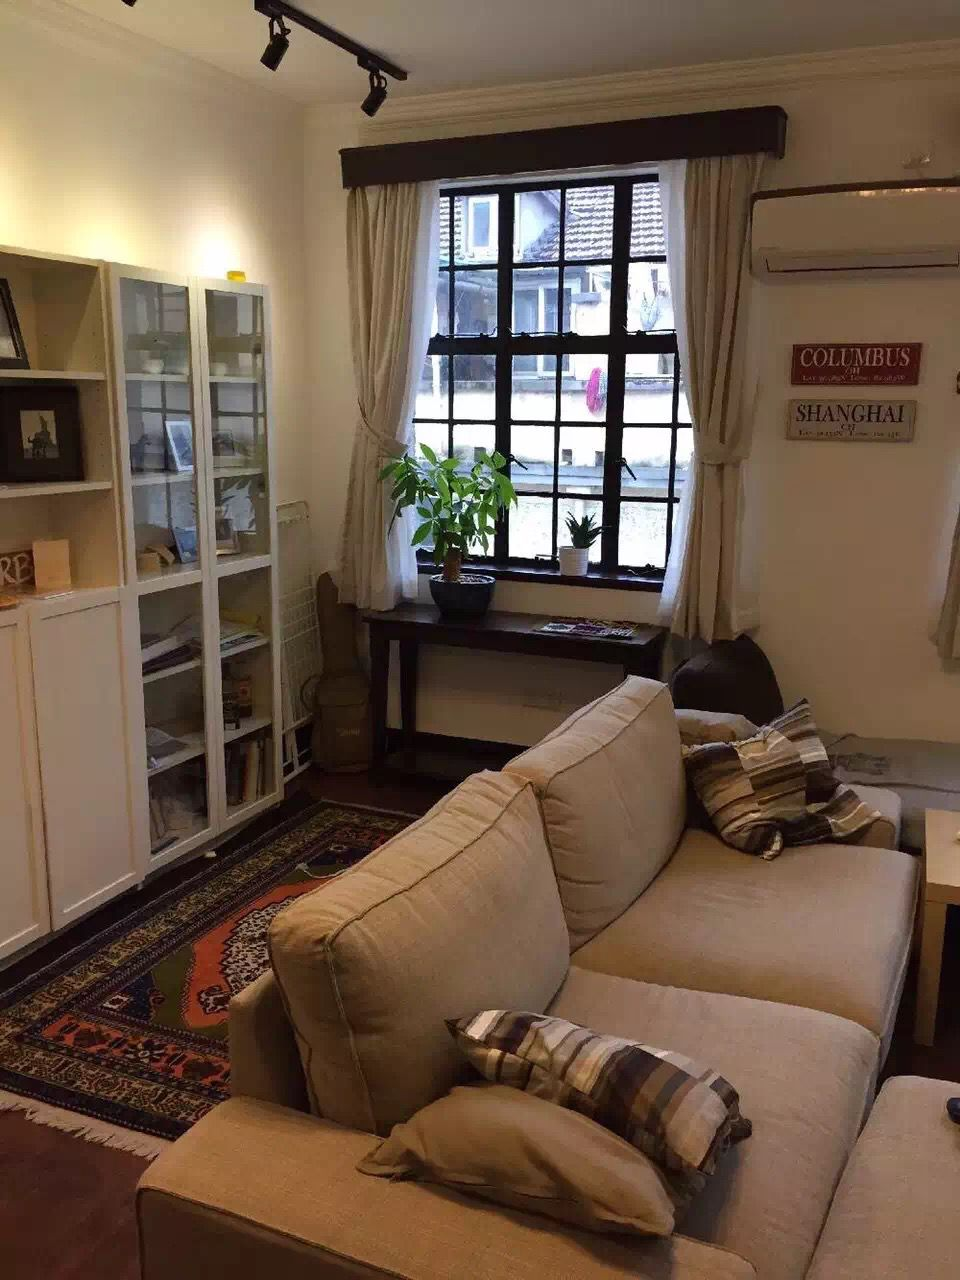 One bedroom apartment for rent on Xinle Road near Shanghai